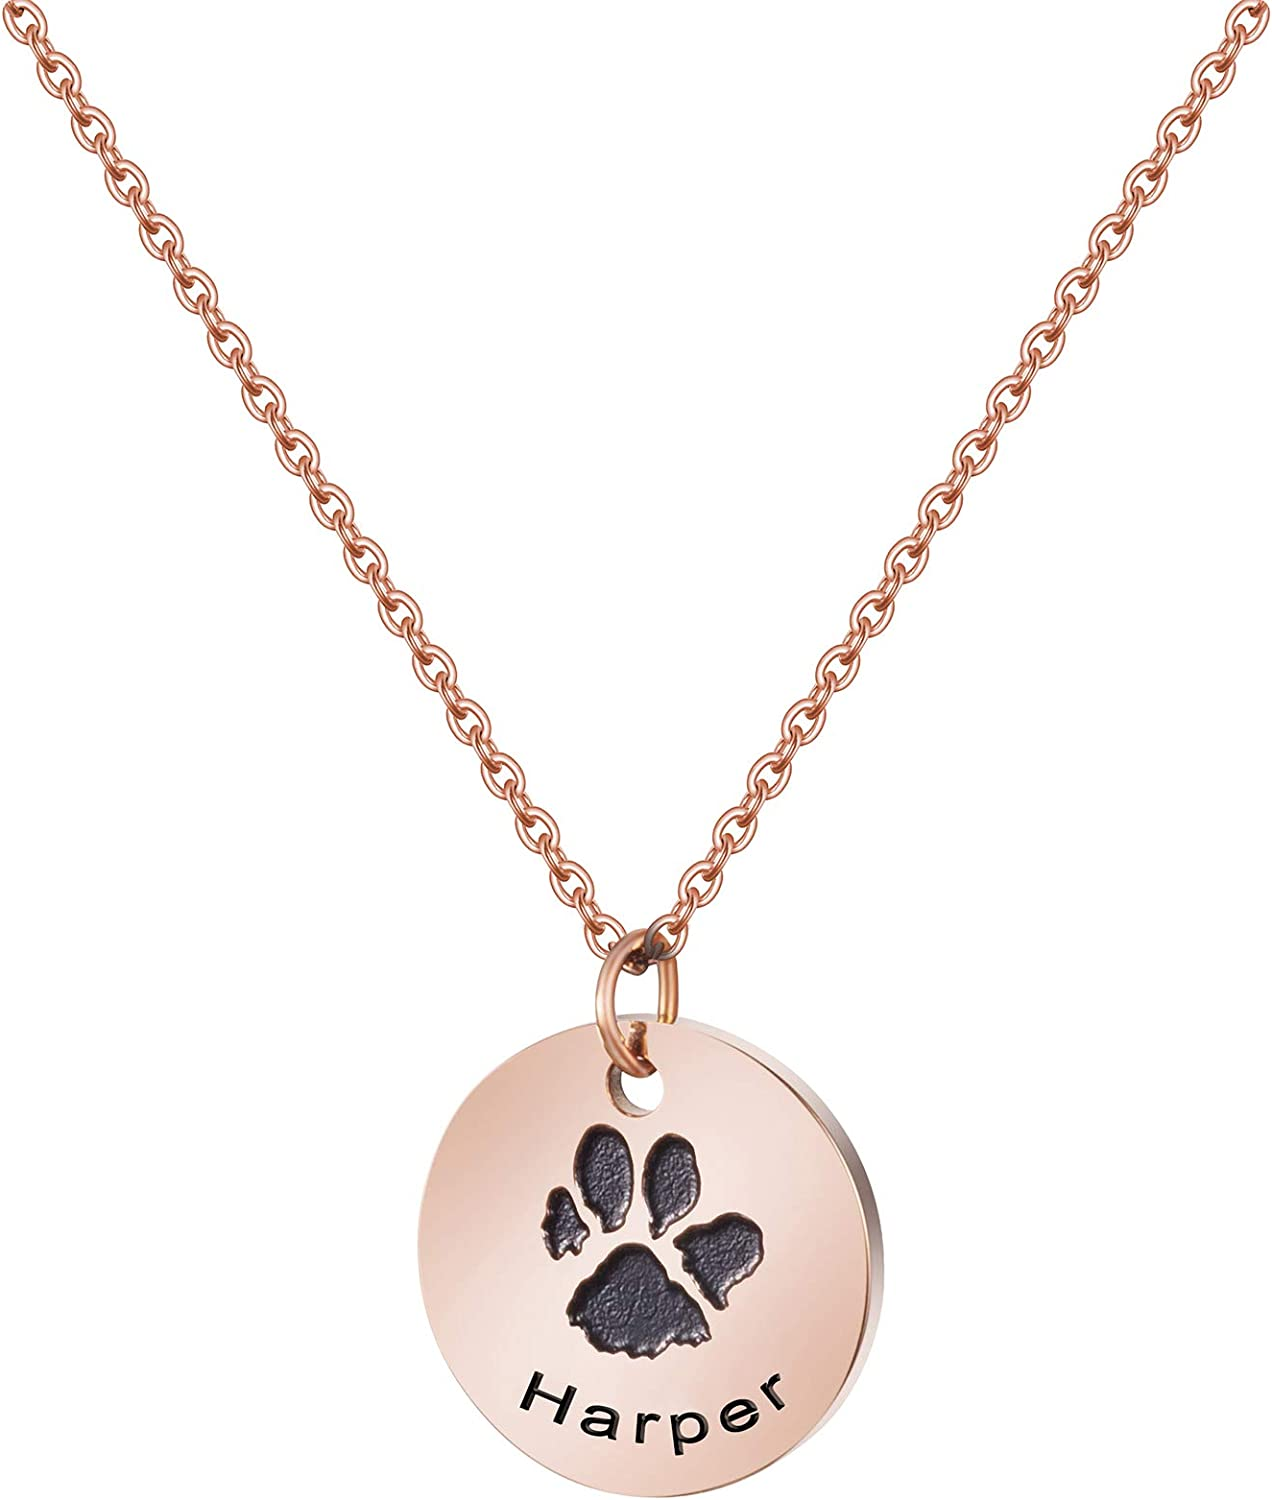 SALENEW very popular JoycuFF Pet Memorial Name Necklace Dog Rose Pa Personalized Gold Sale price